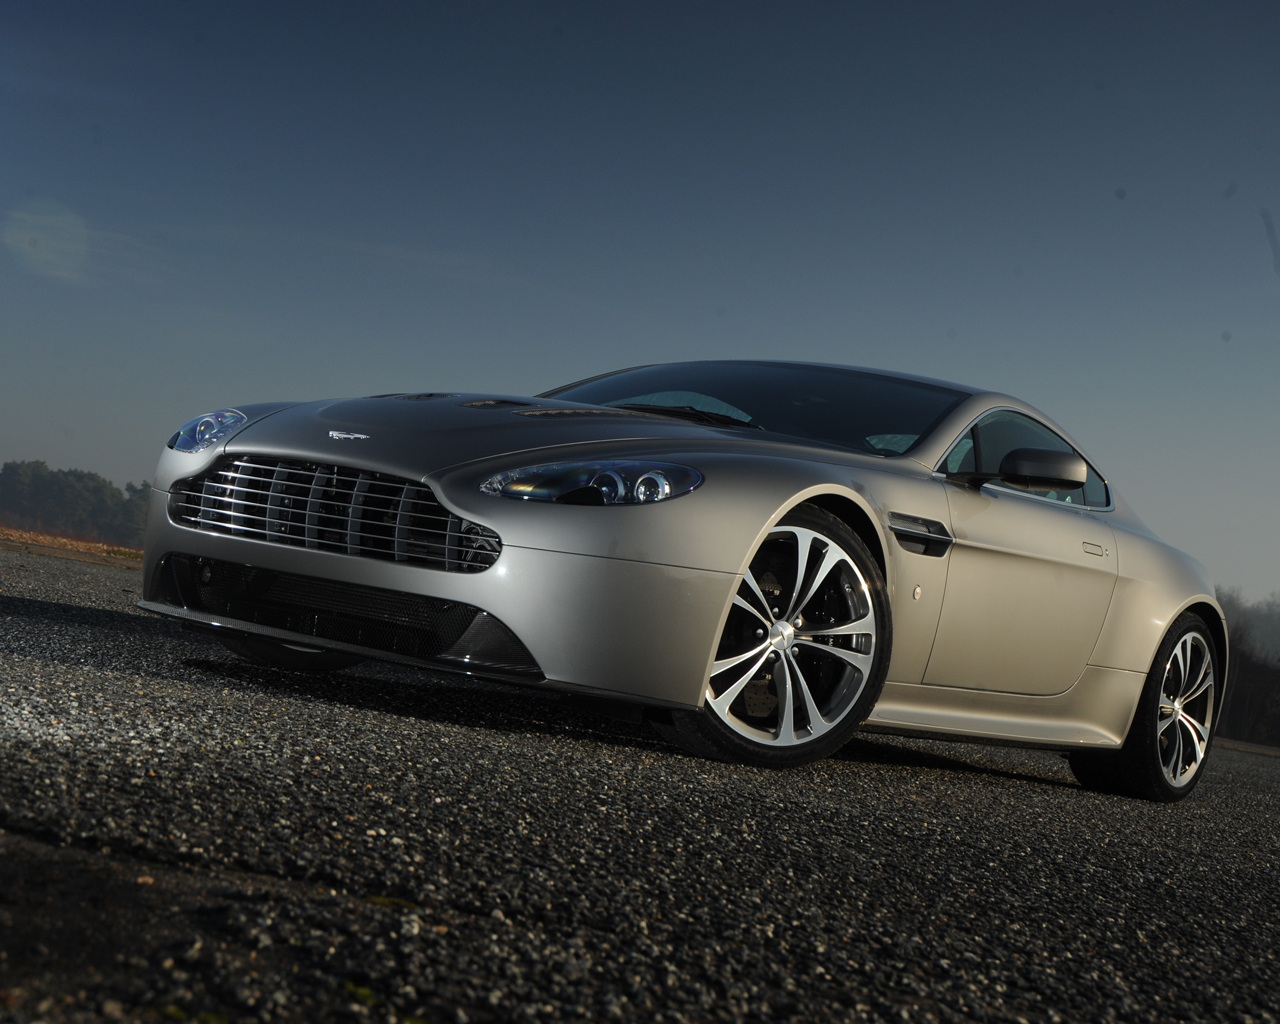 2019 Aston Martin AMV8 Concept Car photo - 5